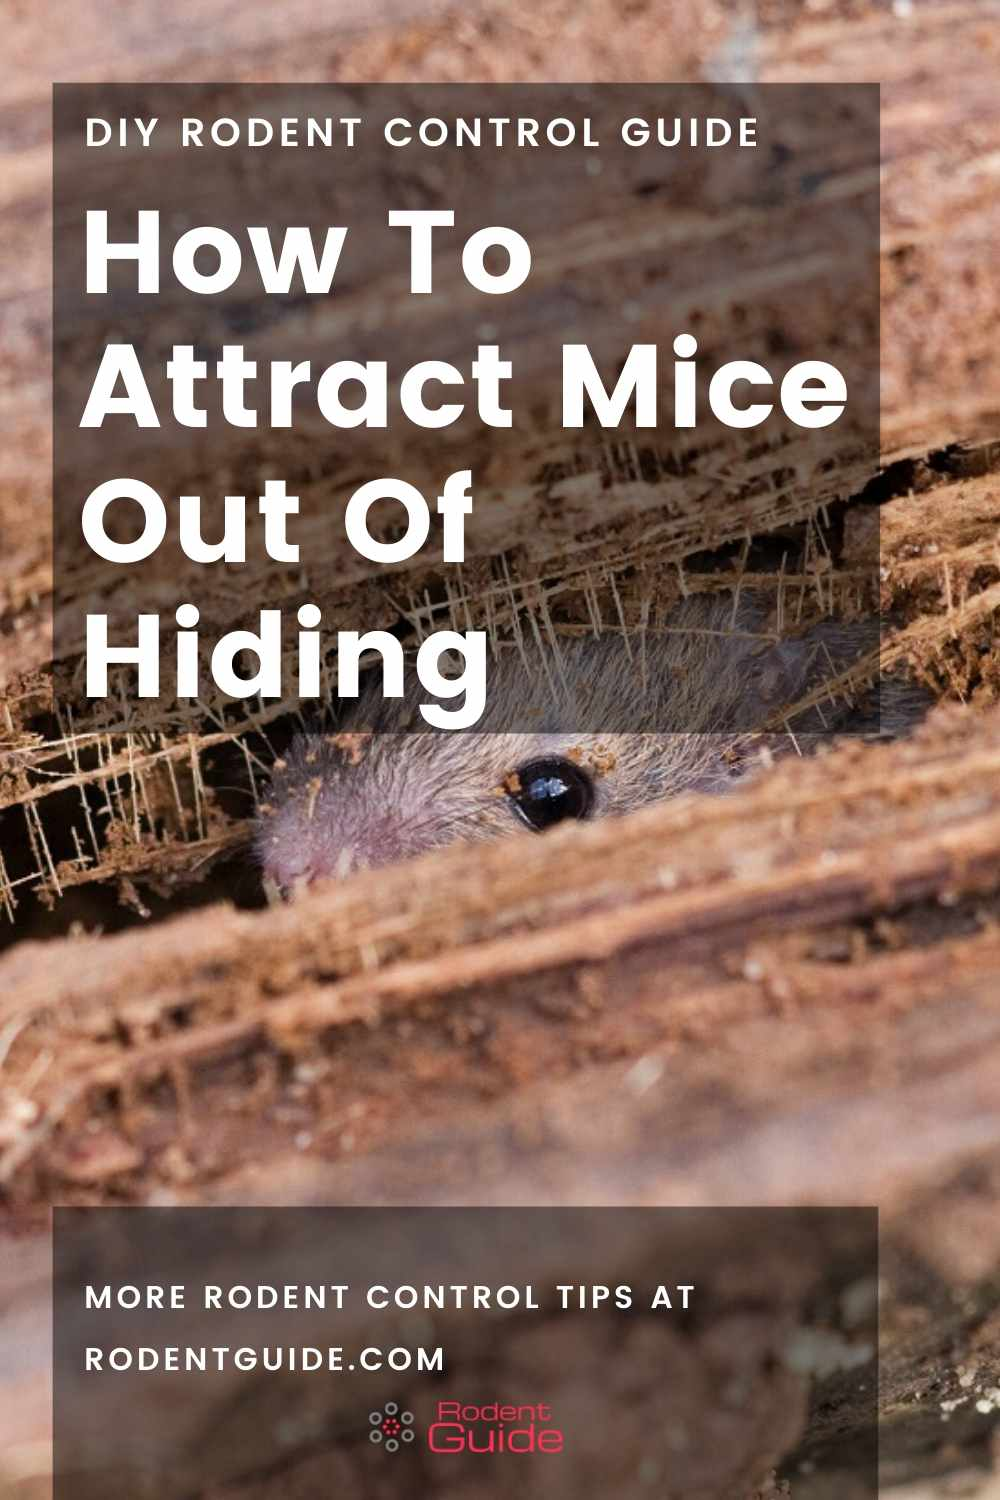 How To Lure Mice Out Of Hiding